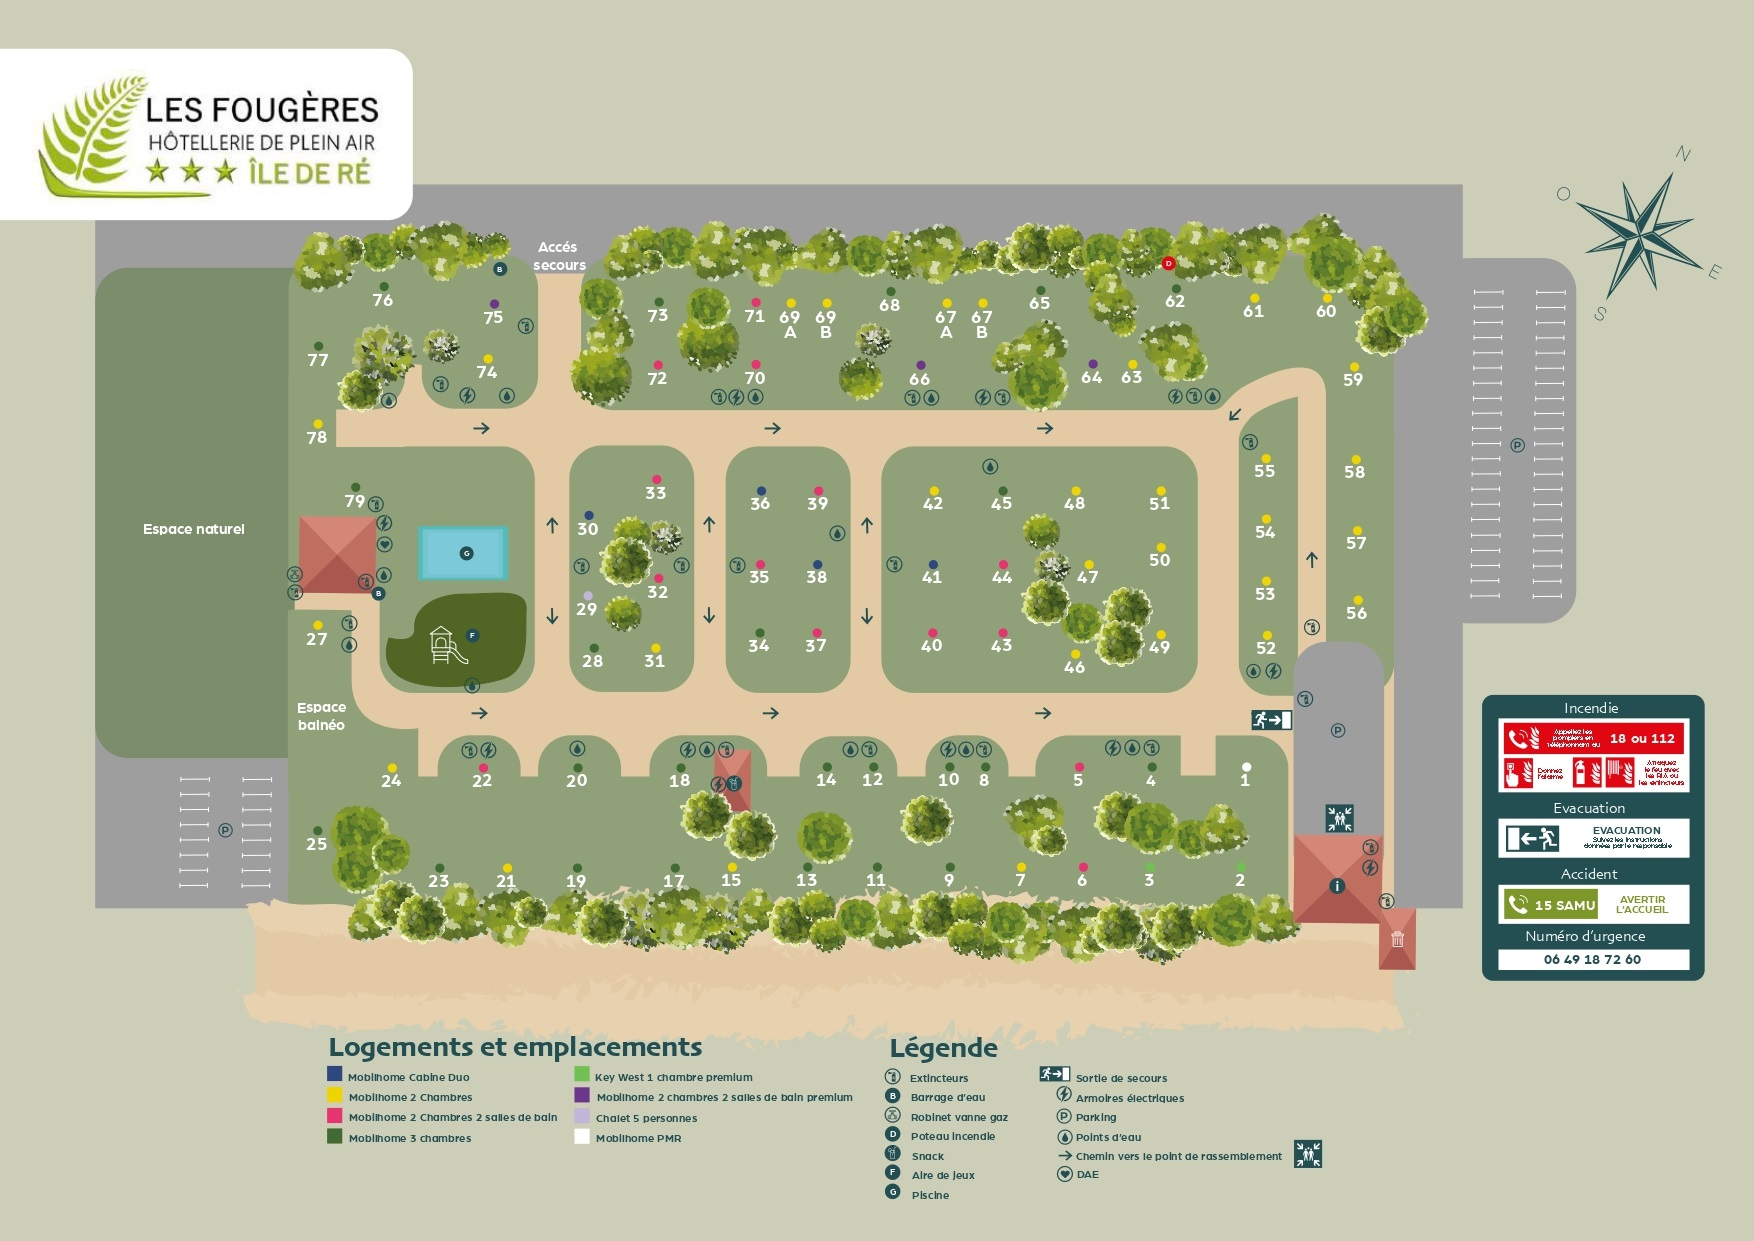 plan fougeres 2021 1_page-0001